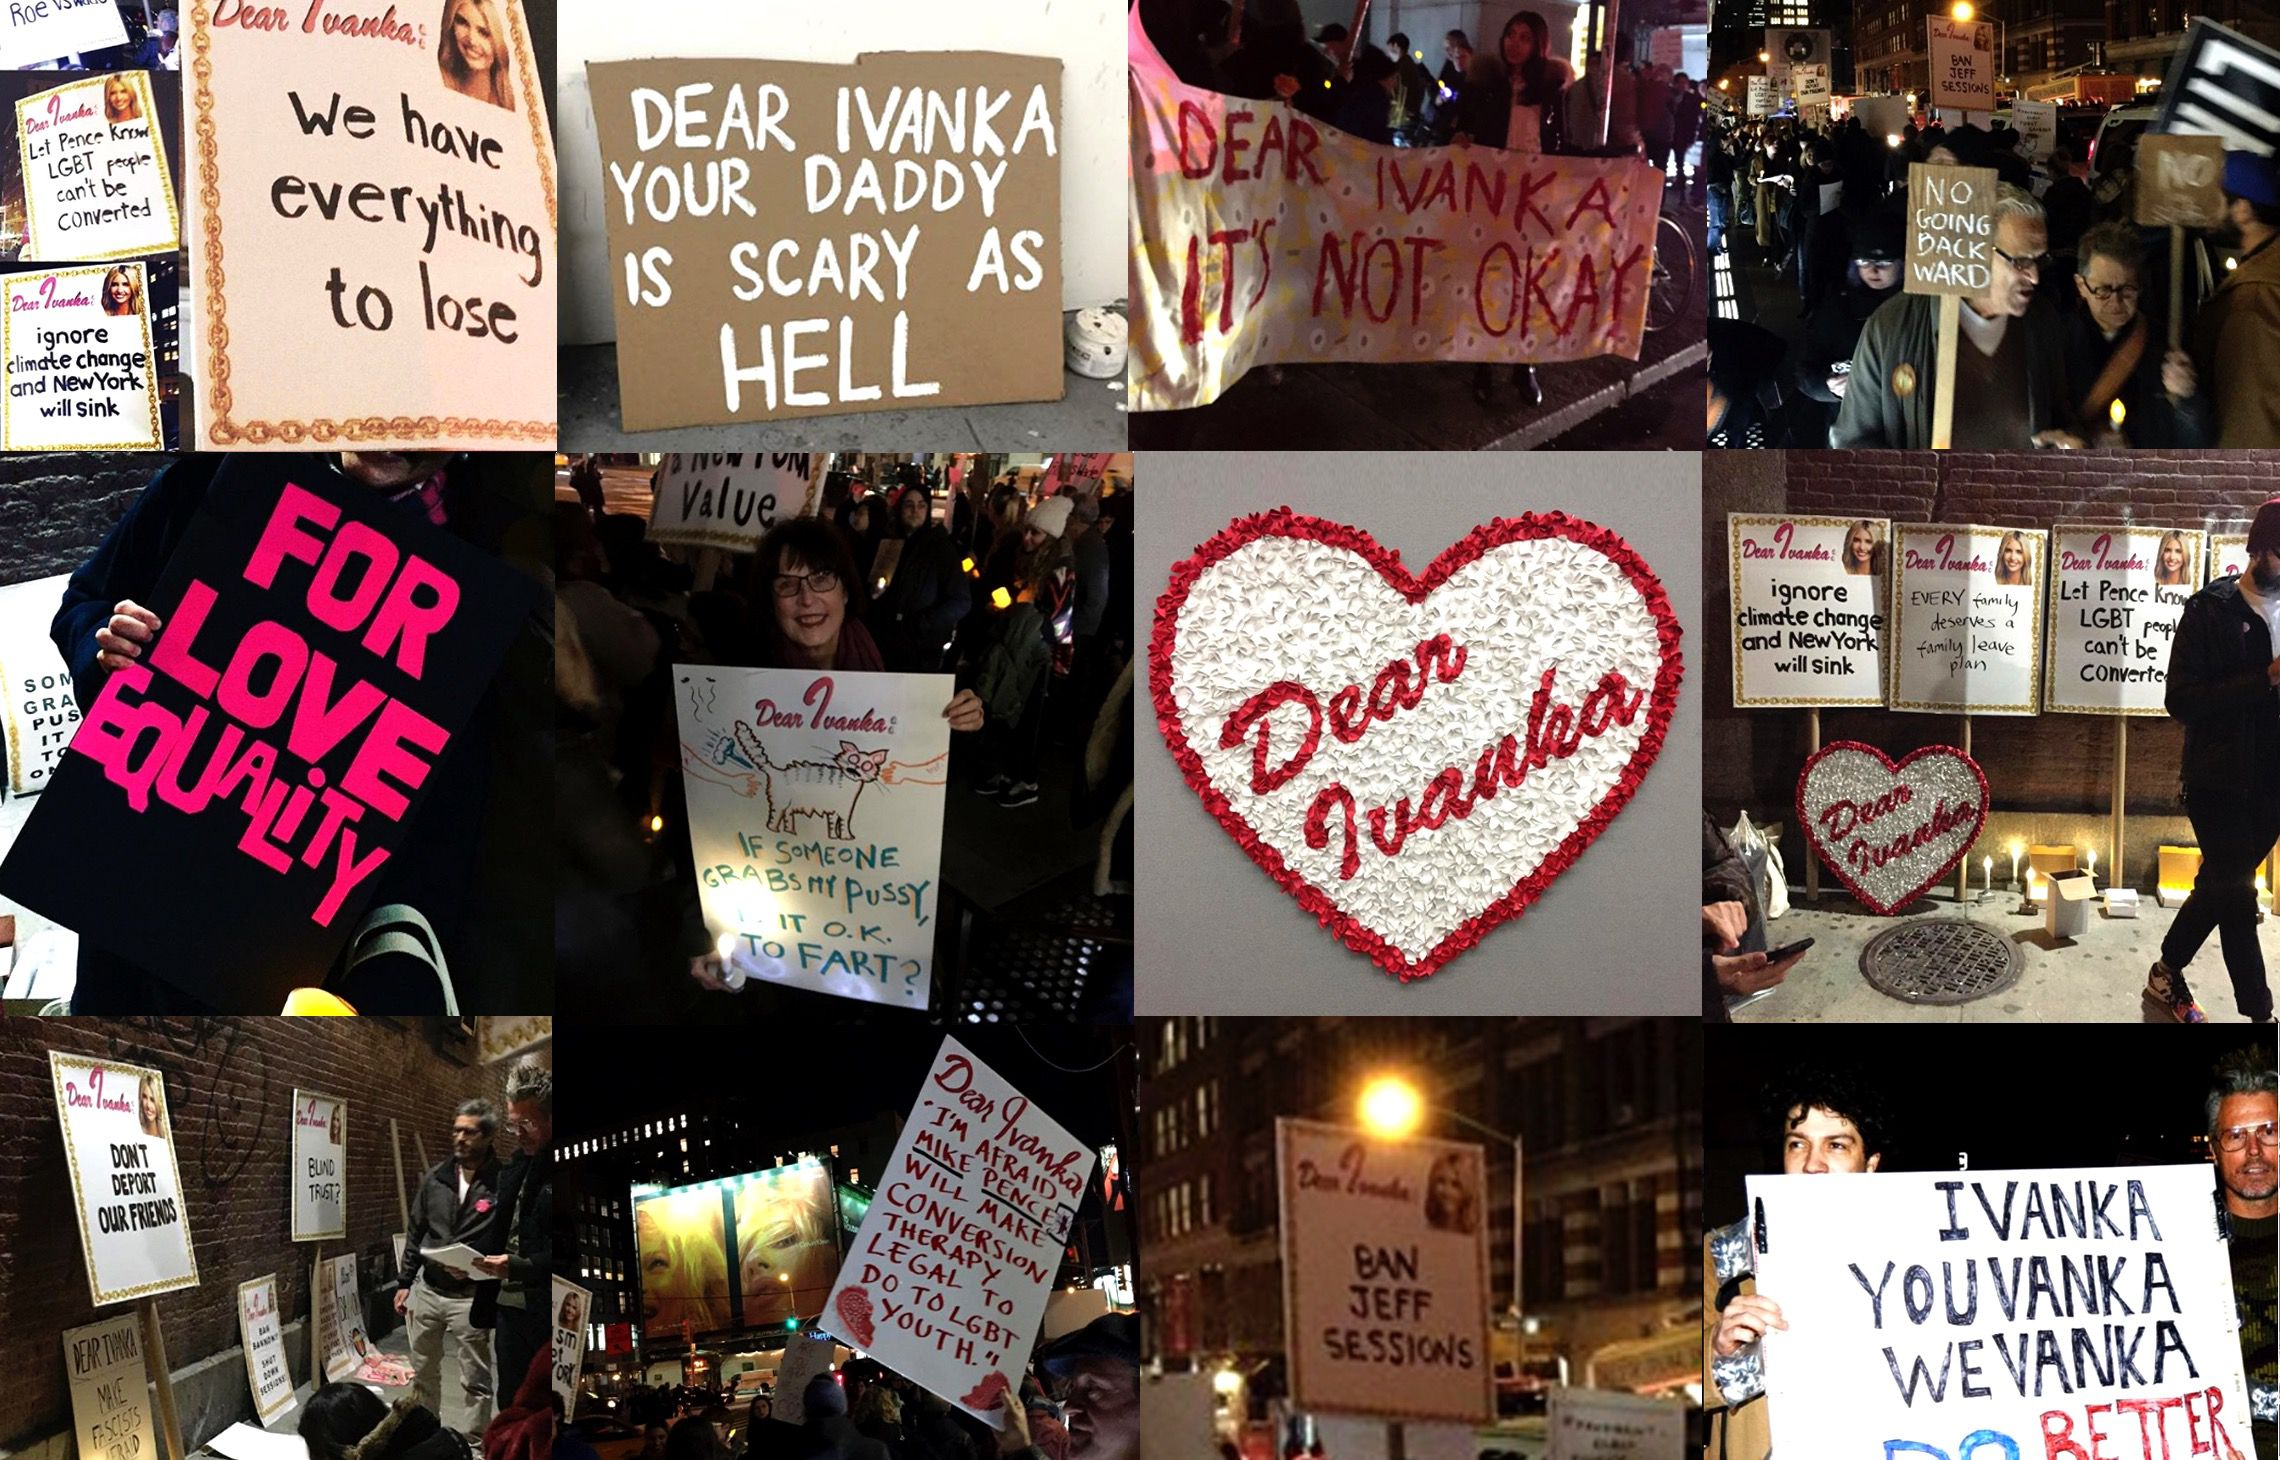 Artists in SoHo Target Ivanka Trump in Candlelight Vigil Against Her Father